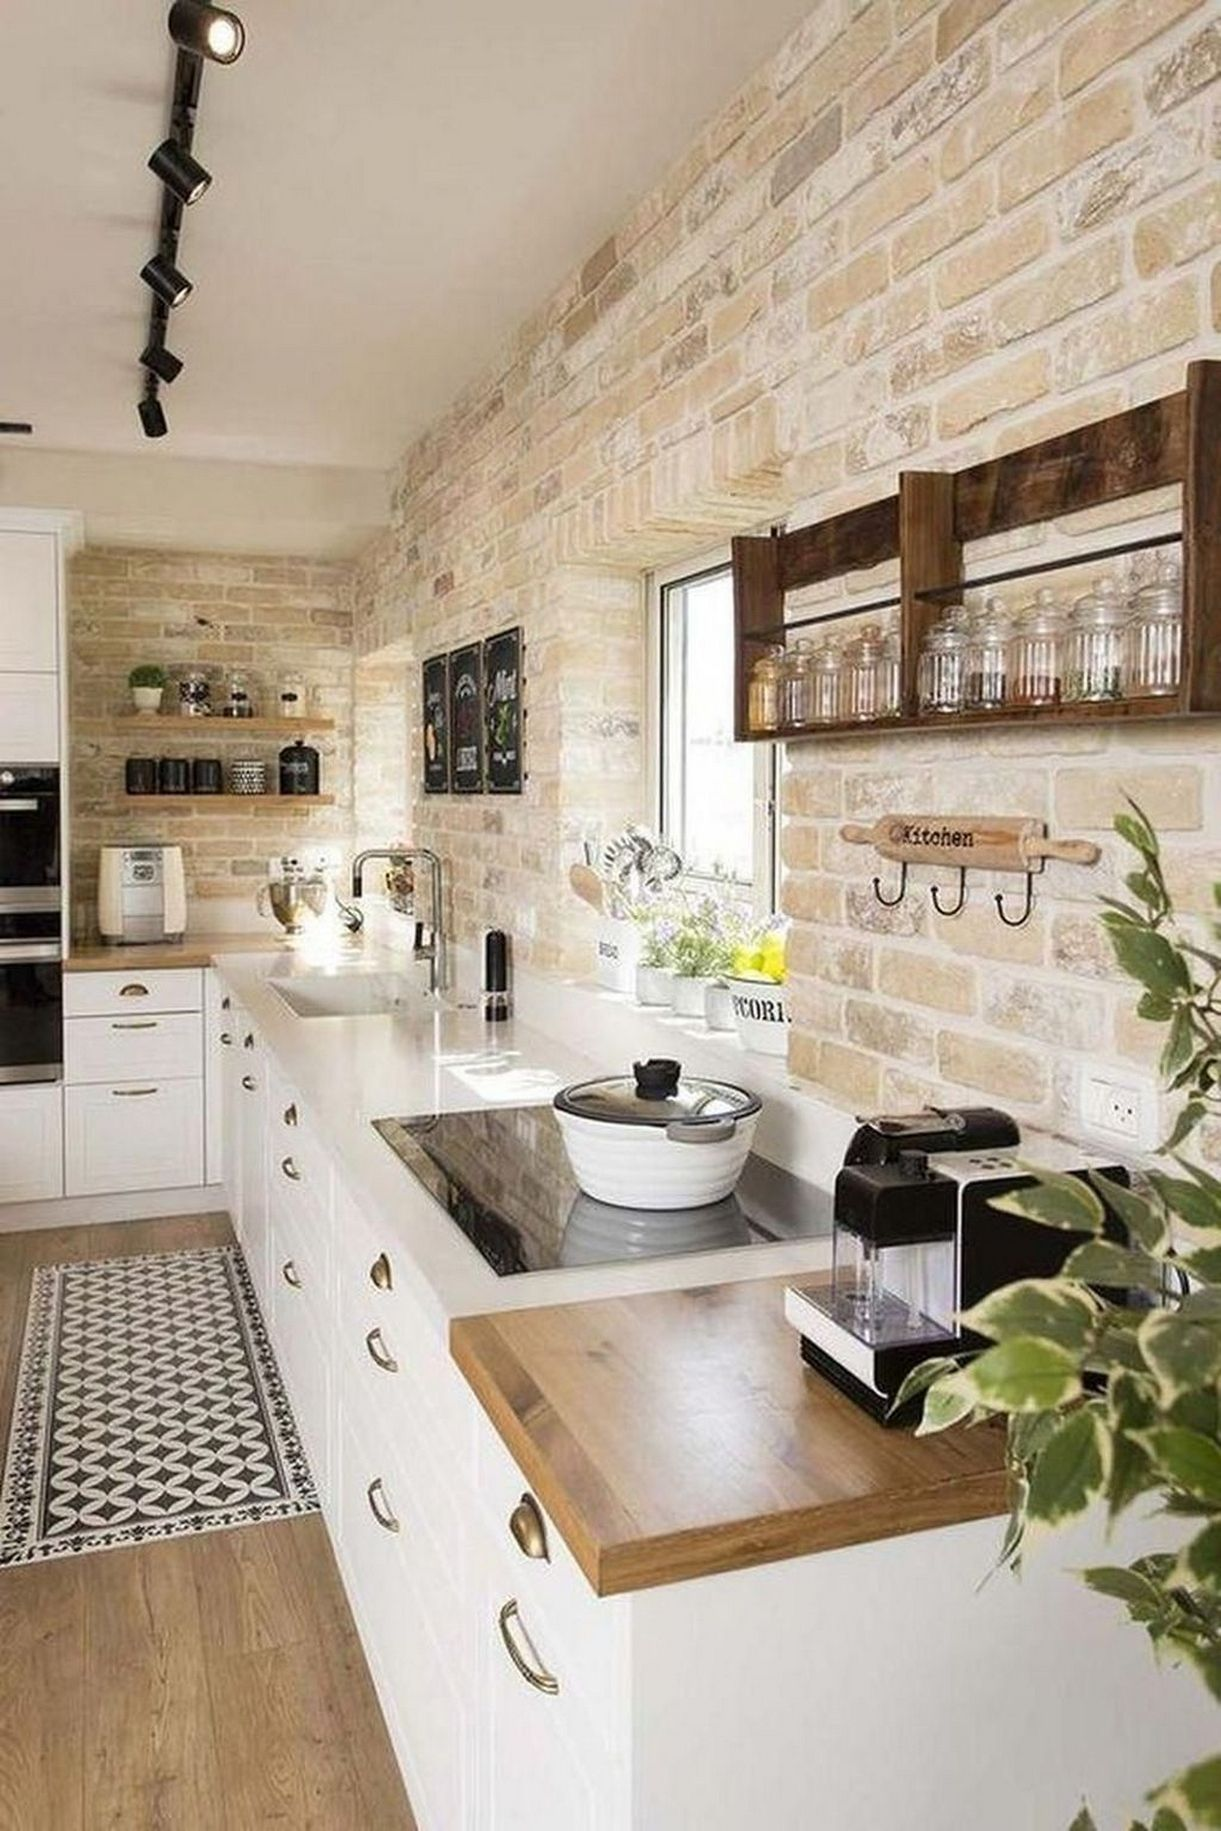 Photo of 📌 20+ idee di stile per la decorazione domestica contemporanea stupefacenti per la tua cucina Inspire 11